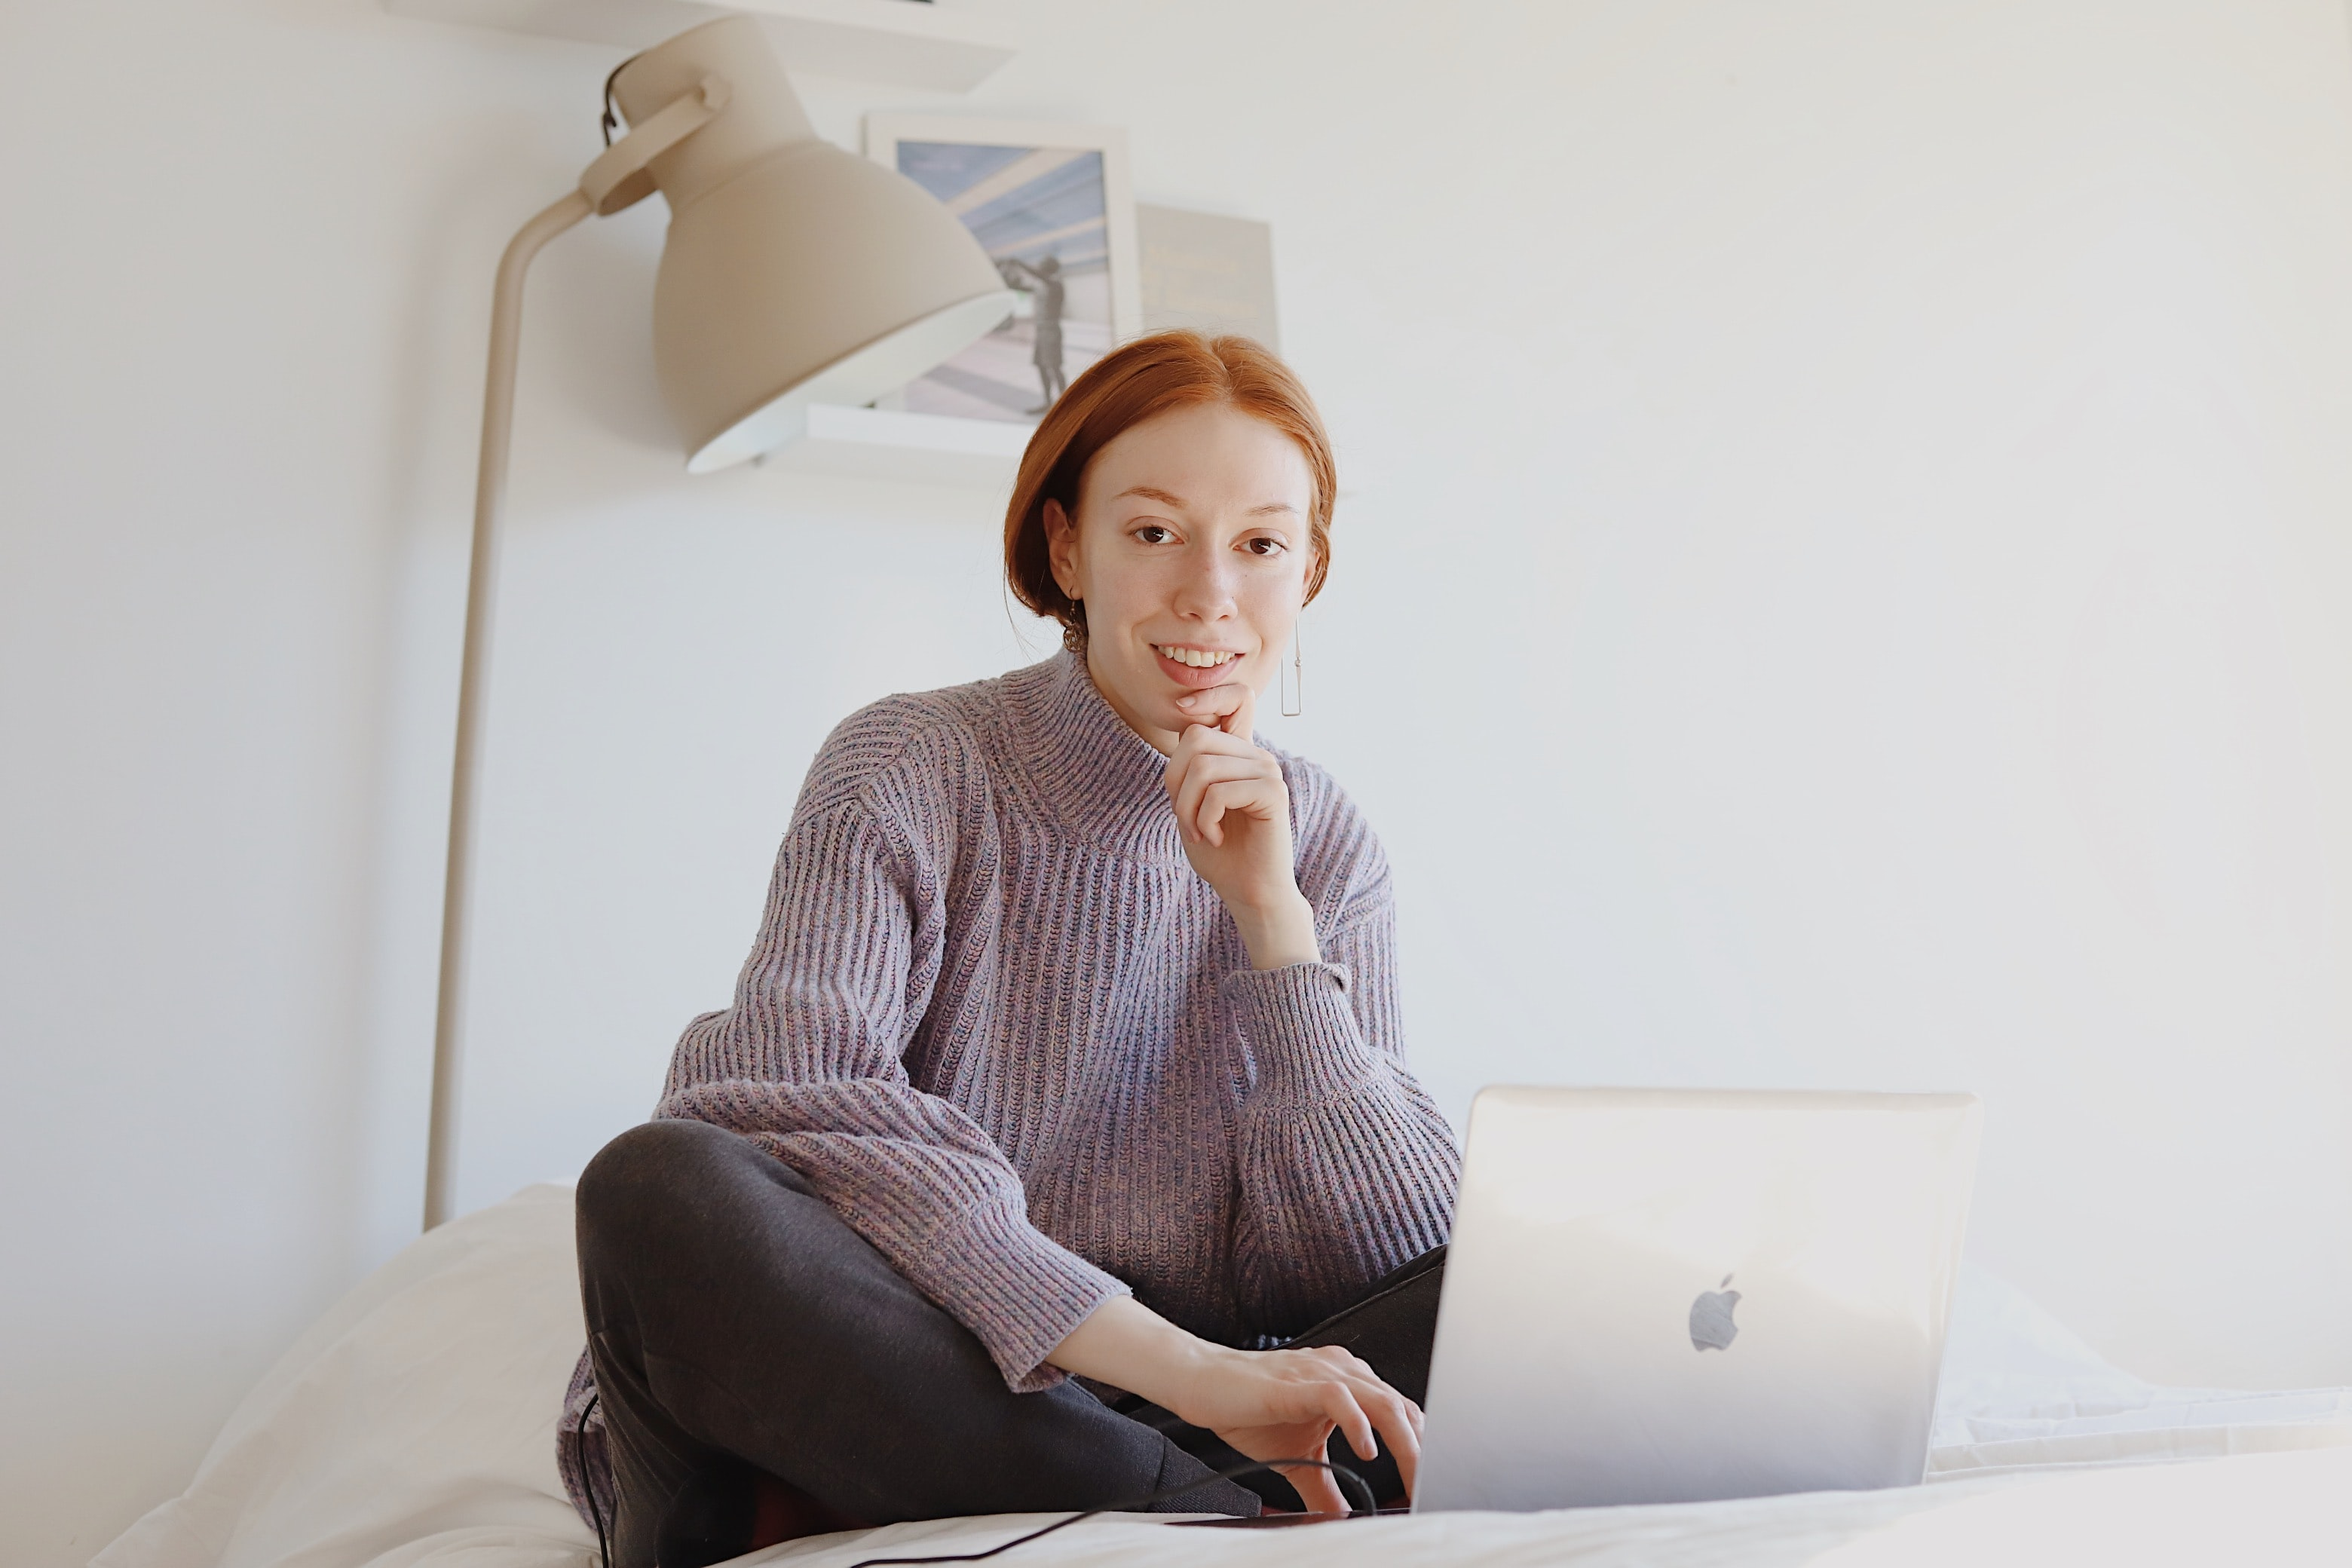 Image of woman sitting on a white bed with a laptop